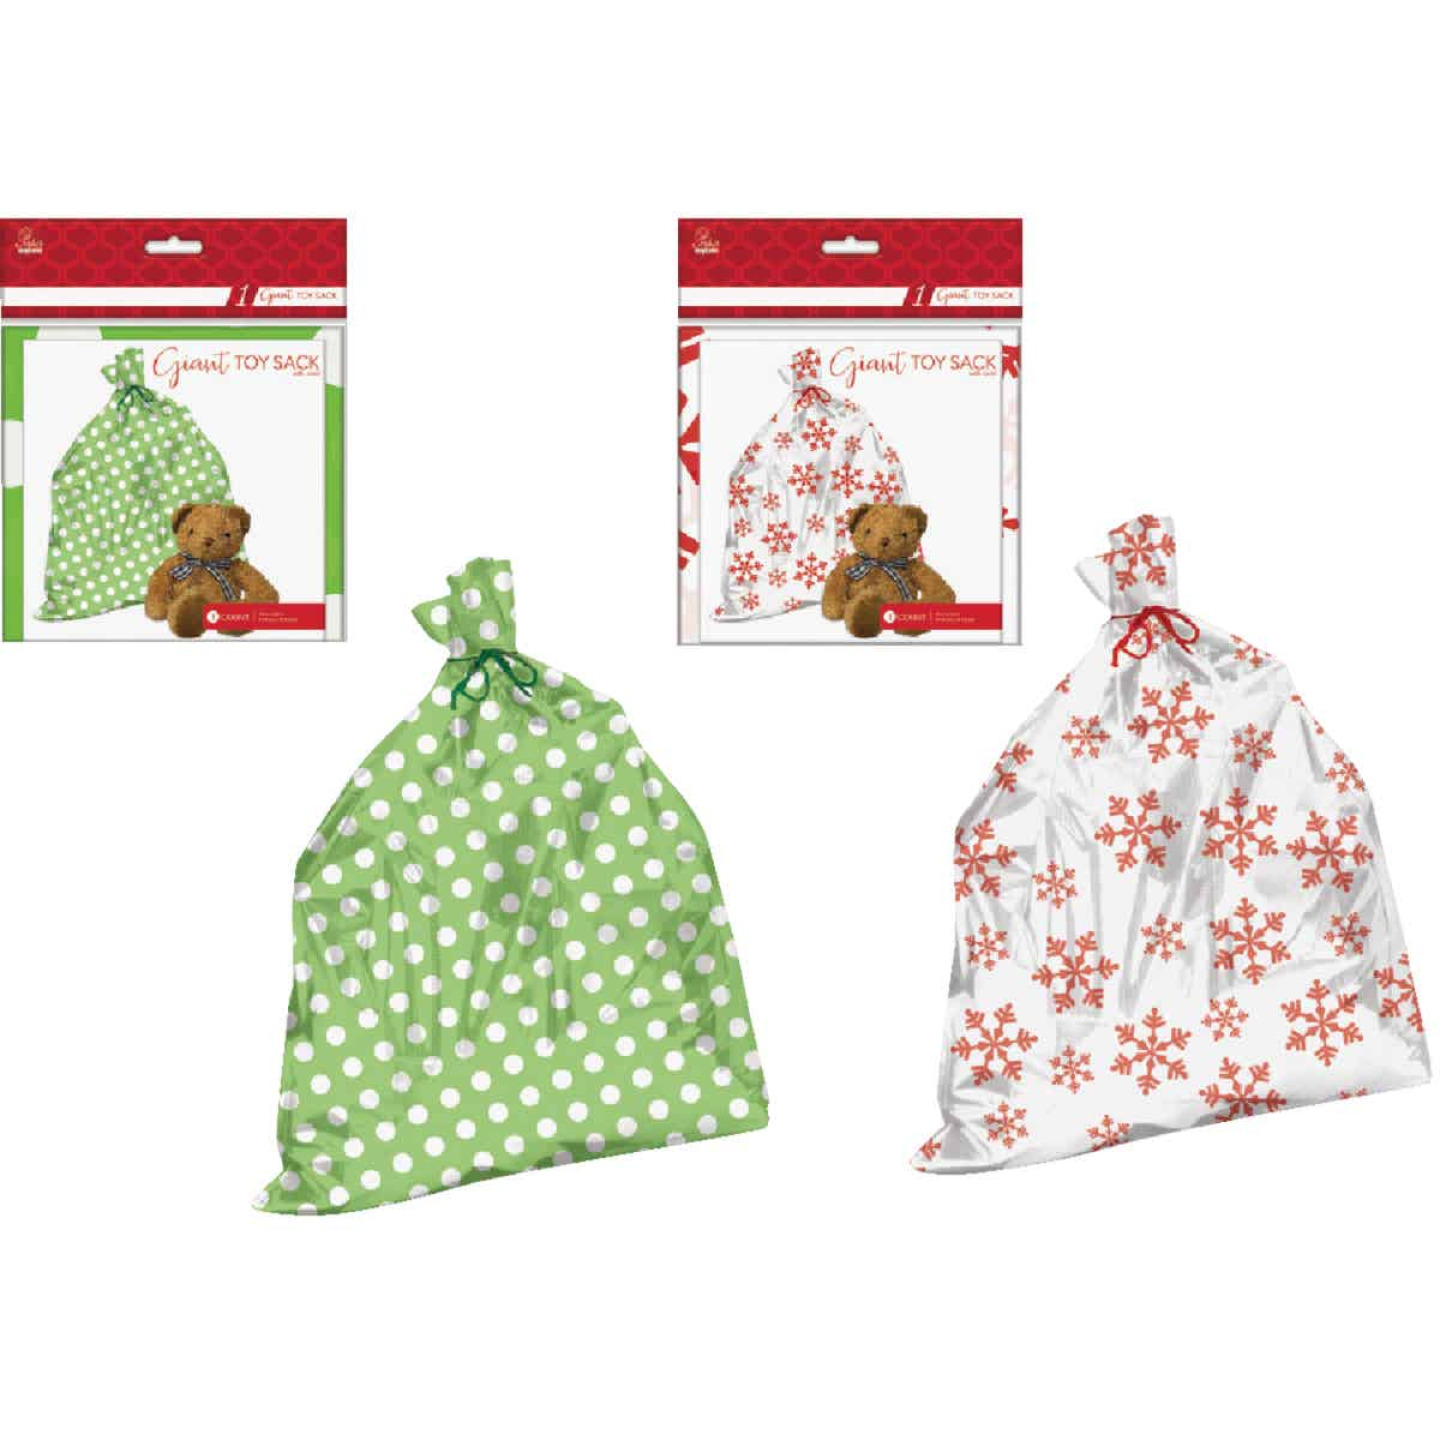 Paper Images Giant Plastic Toy/Gift Sack Image 1